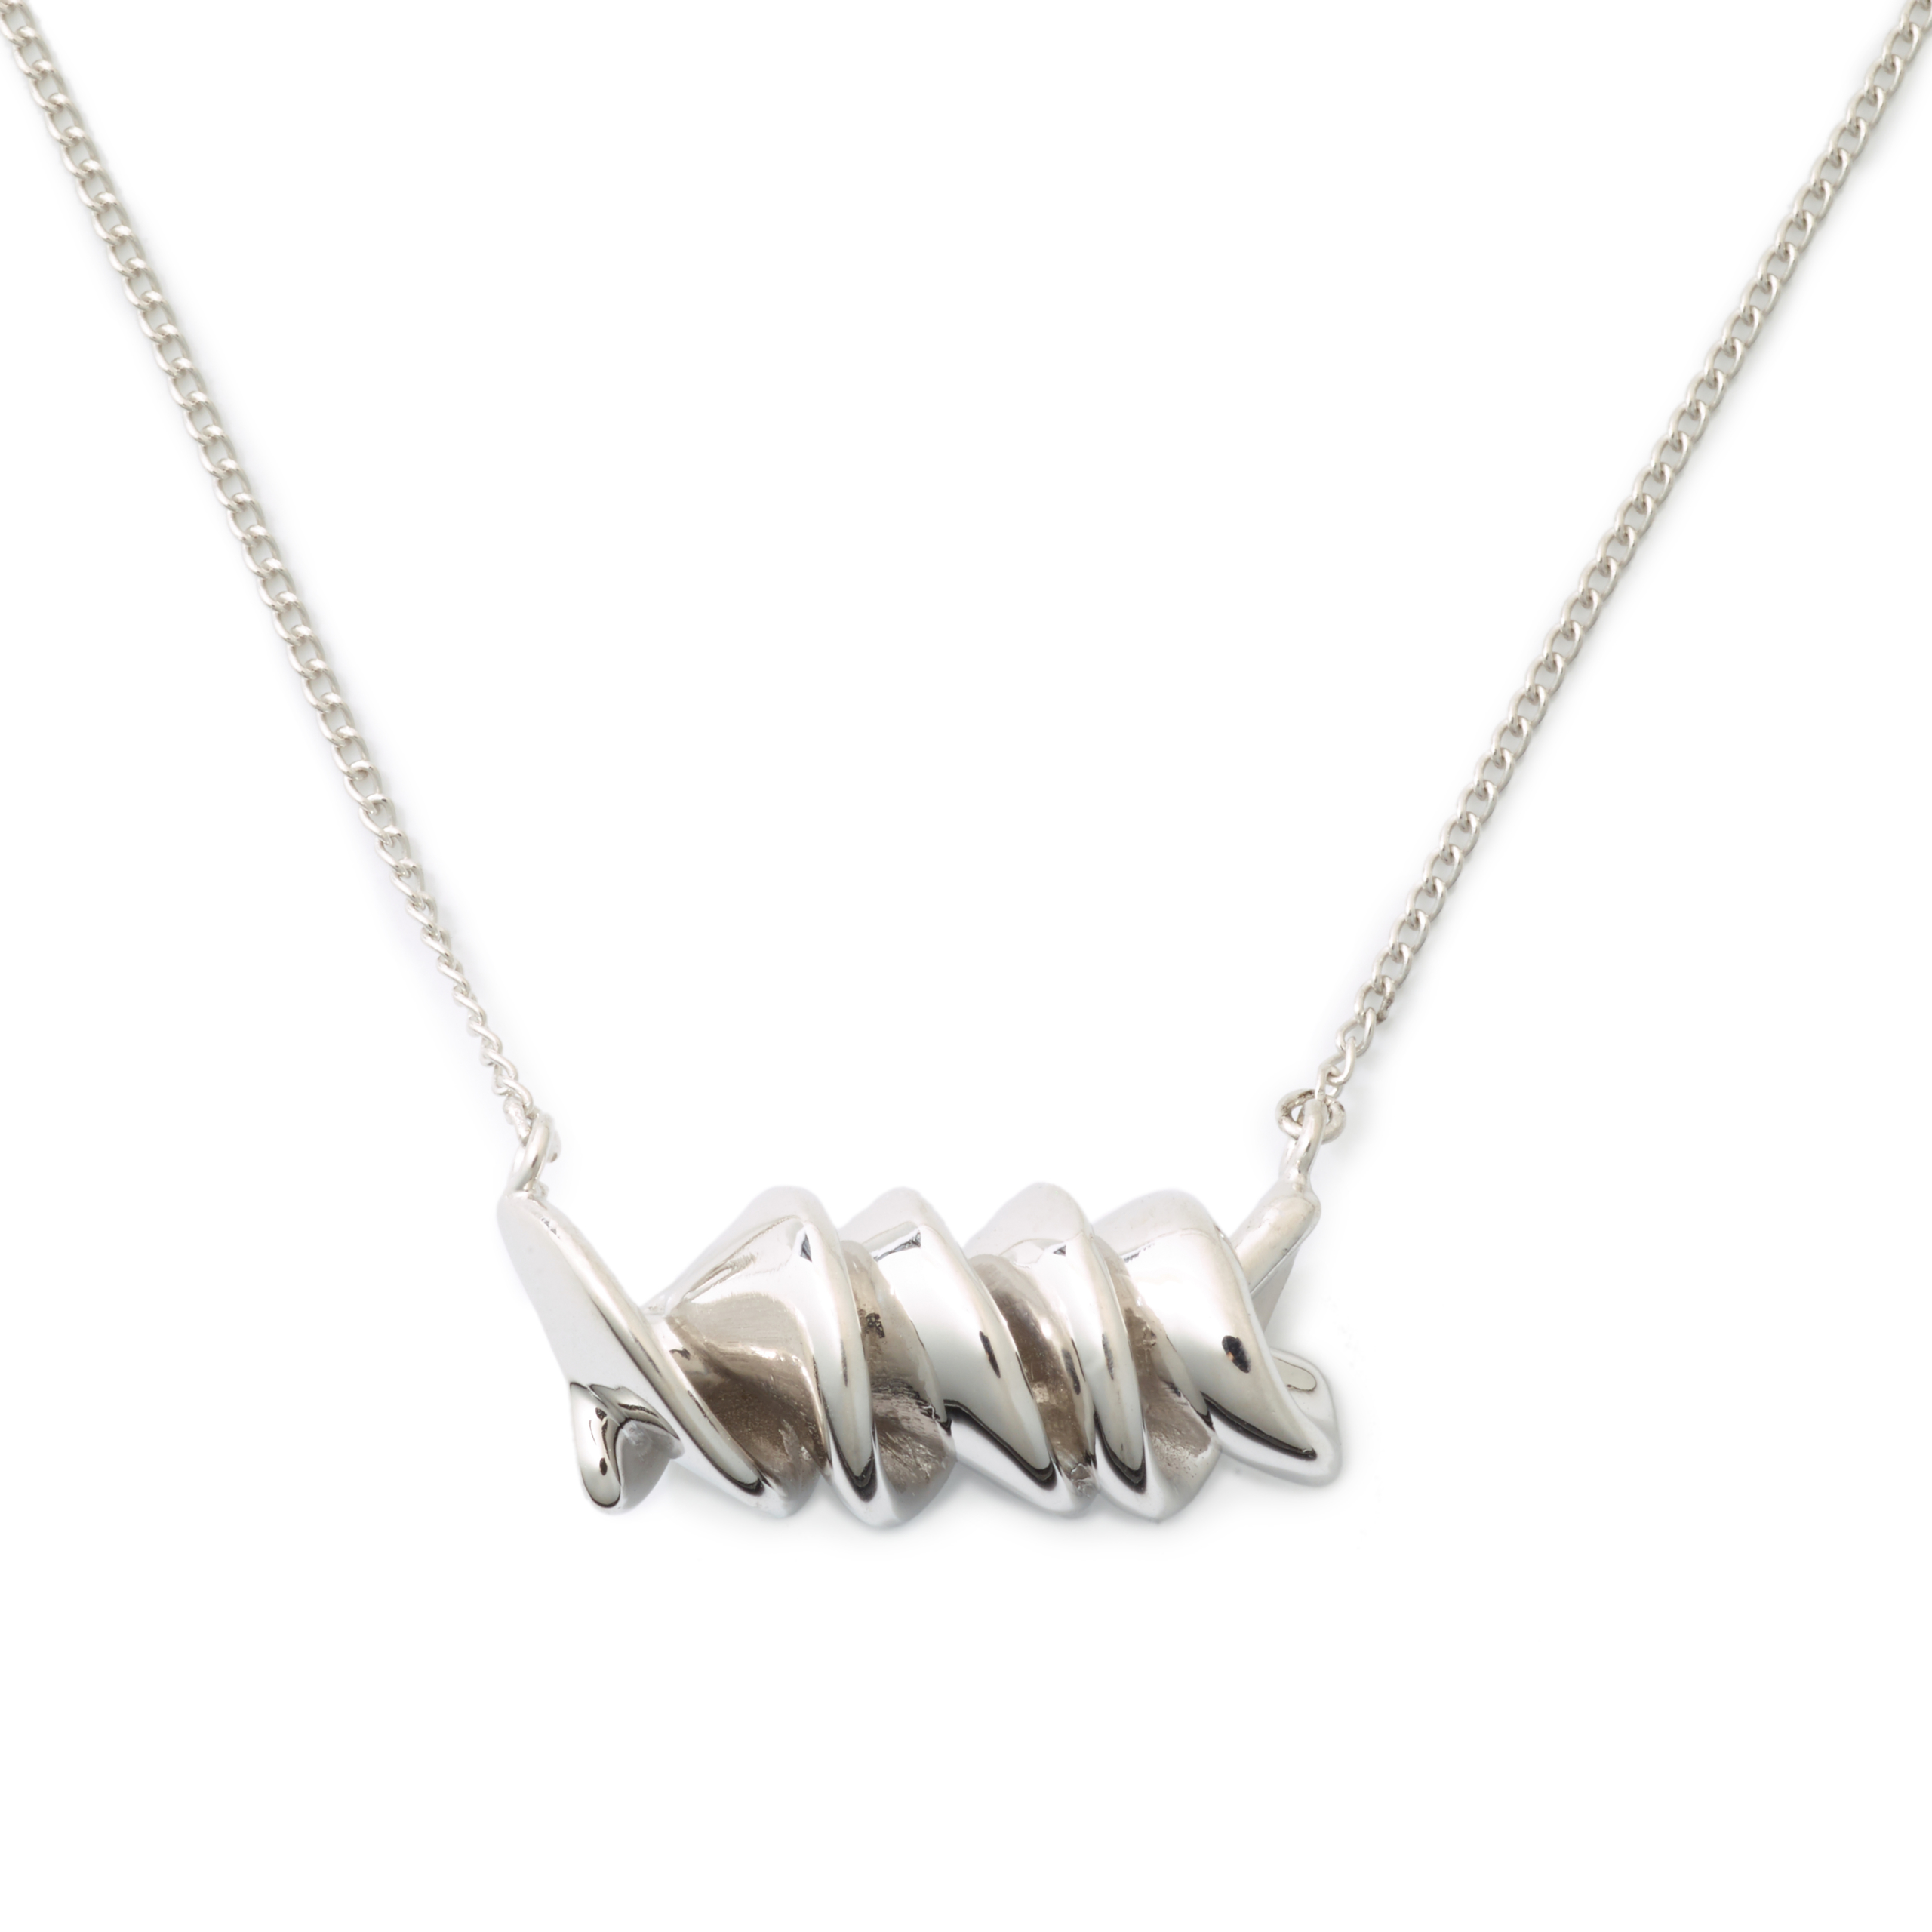 Rotini Necklace, Sterling Silver